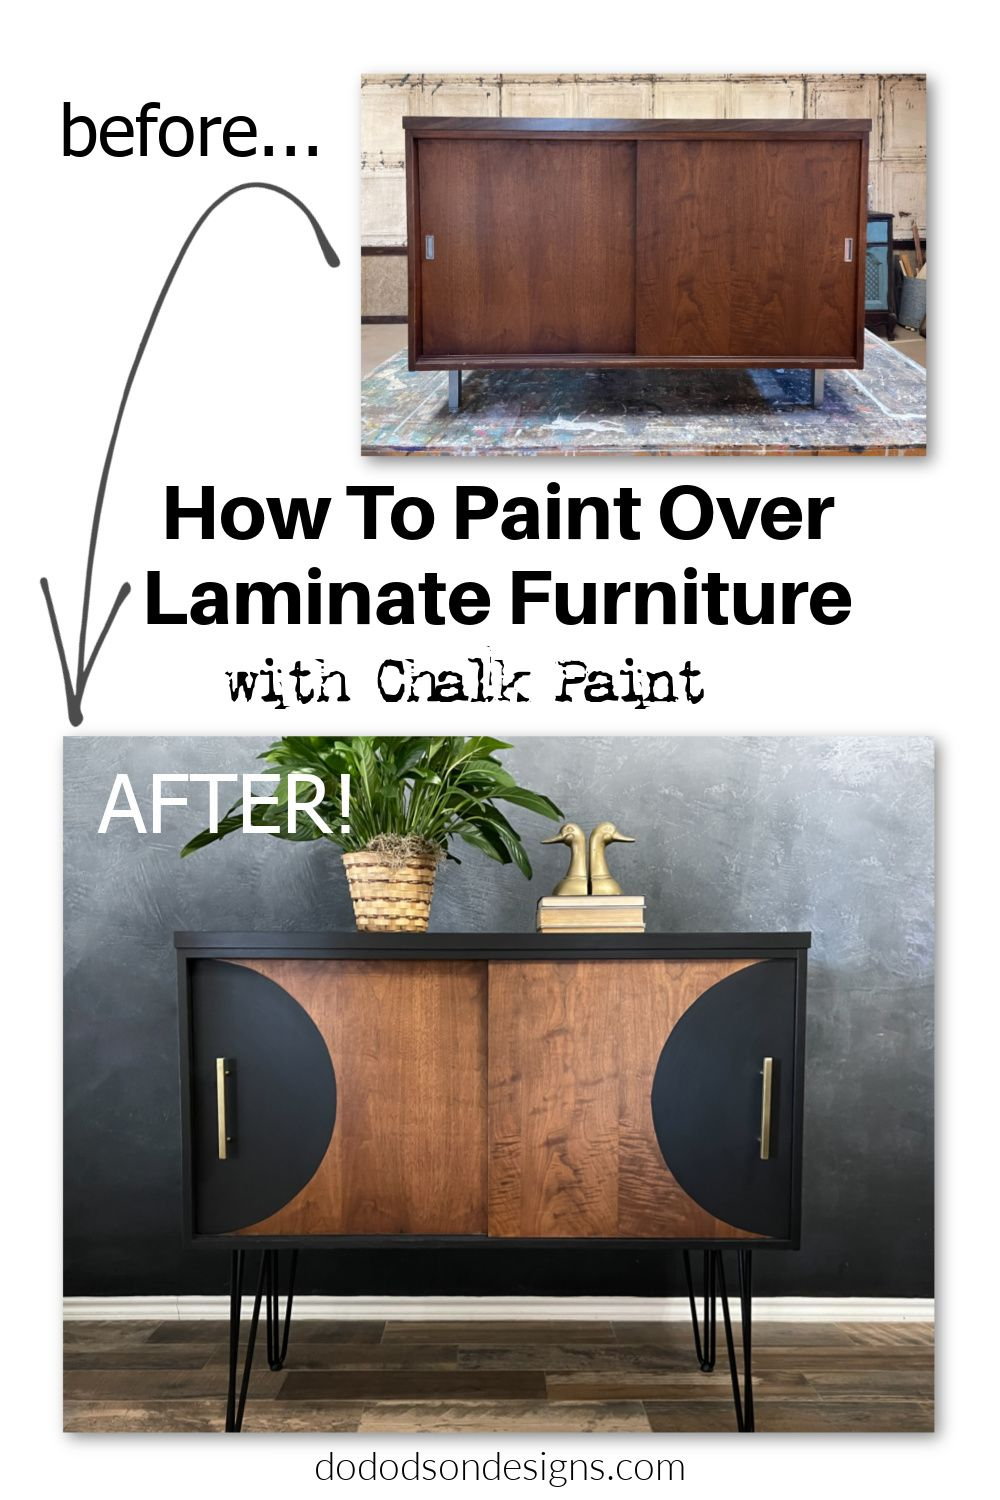 How To Paint Over Laminate Furniture With Chalk Pa